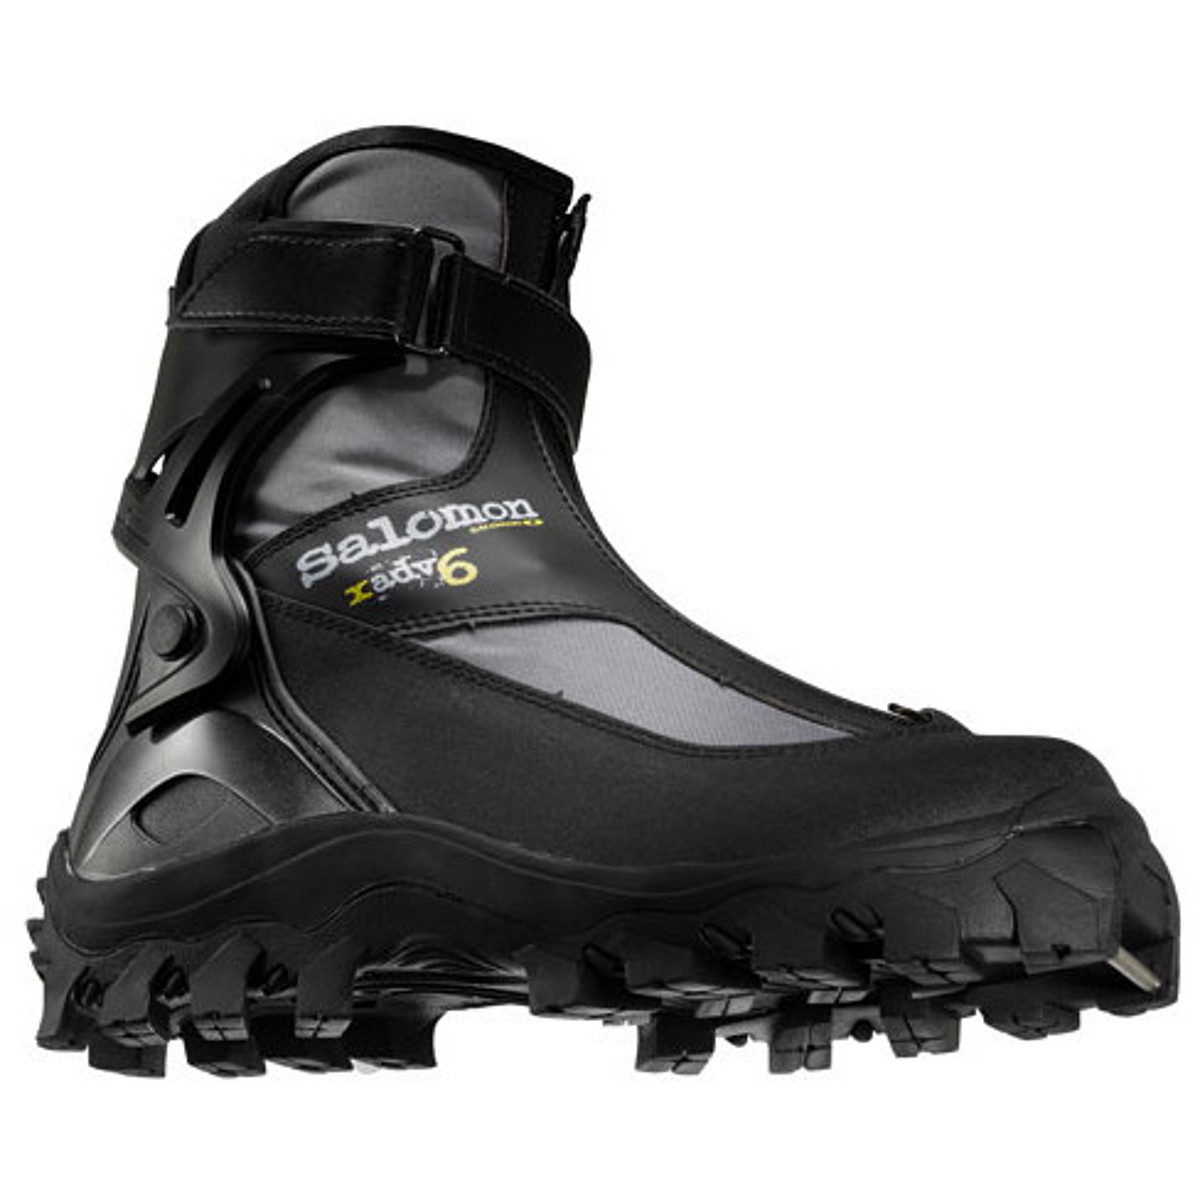 photo: Salomon X-ADV 6 nordic touring boot